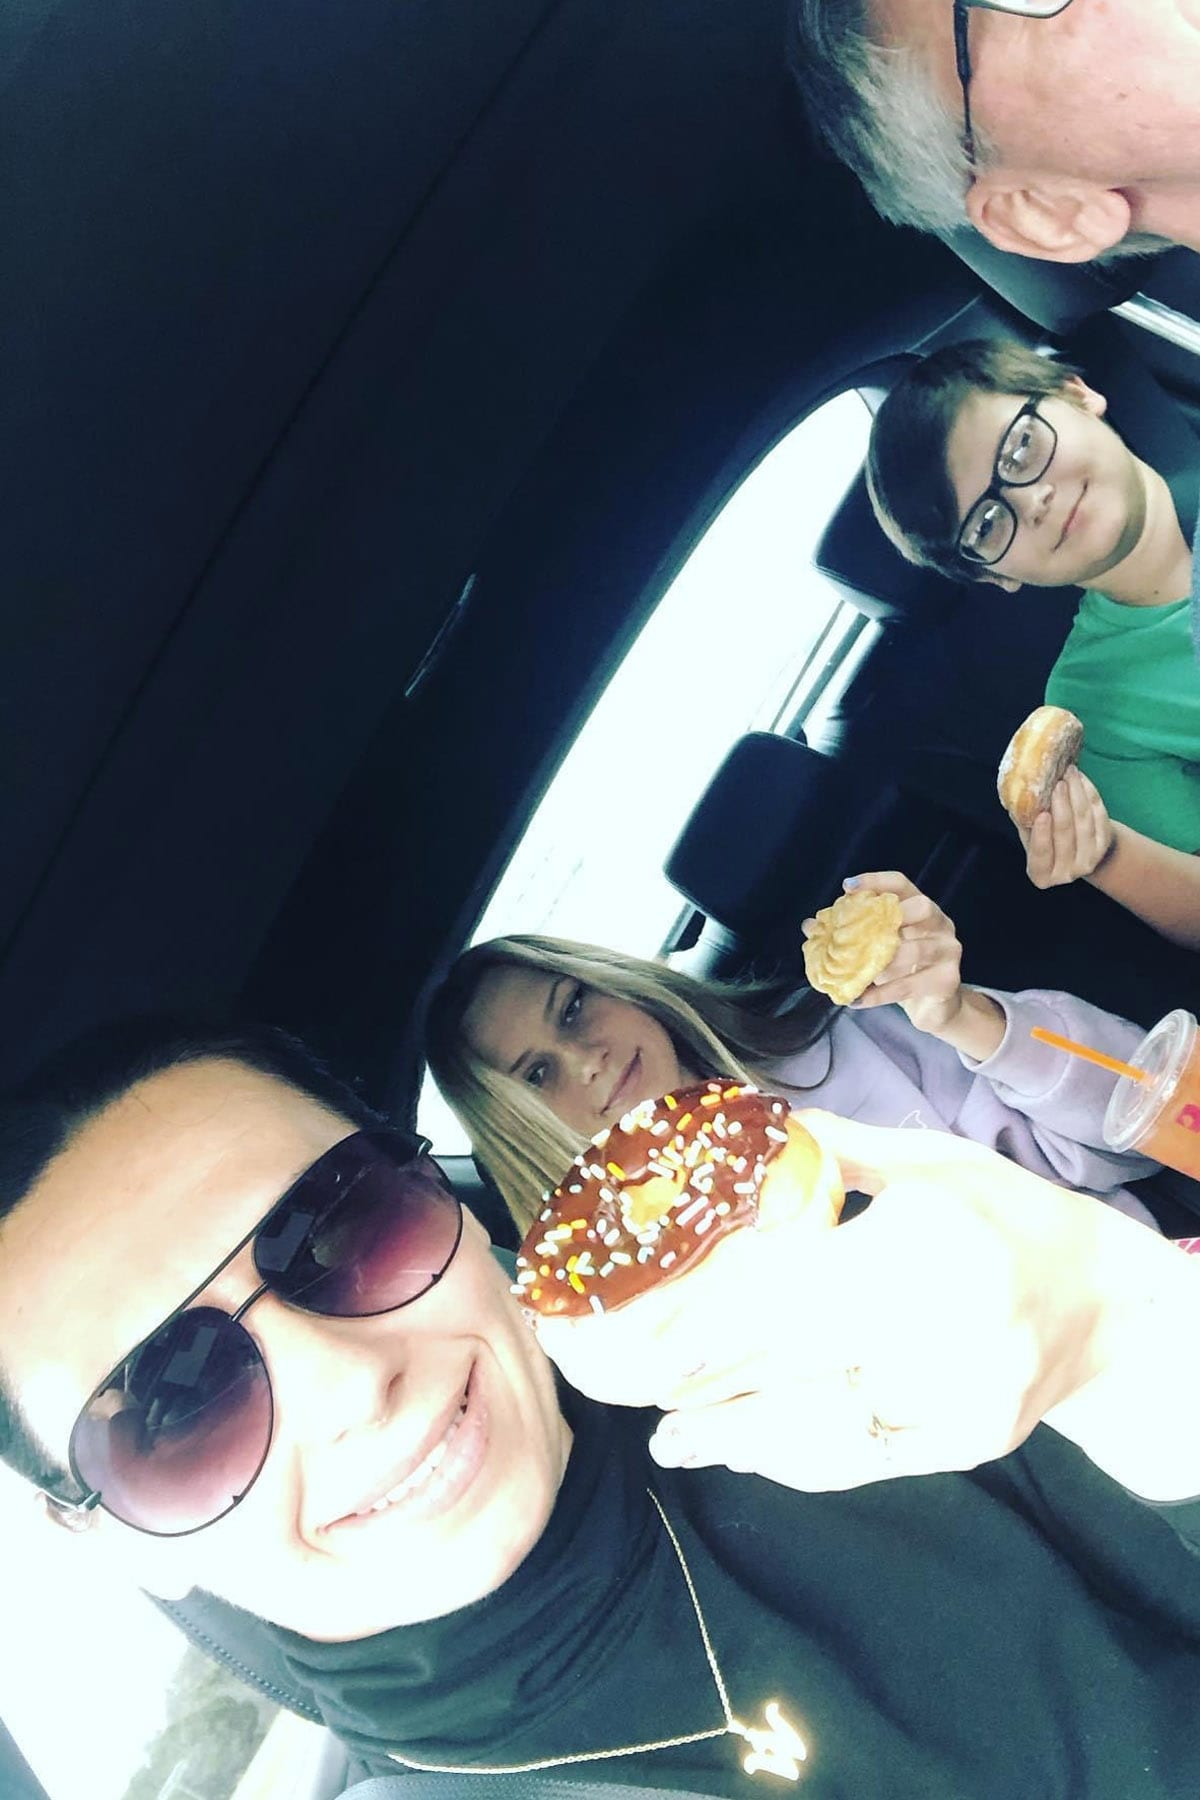 Family road trips are always fun!